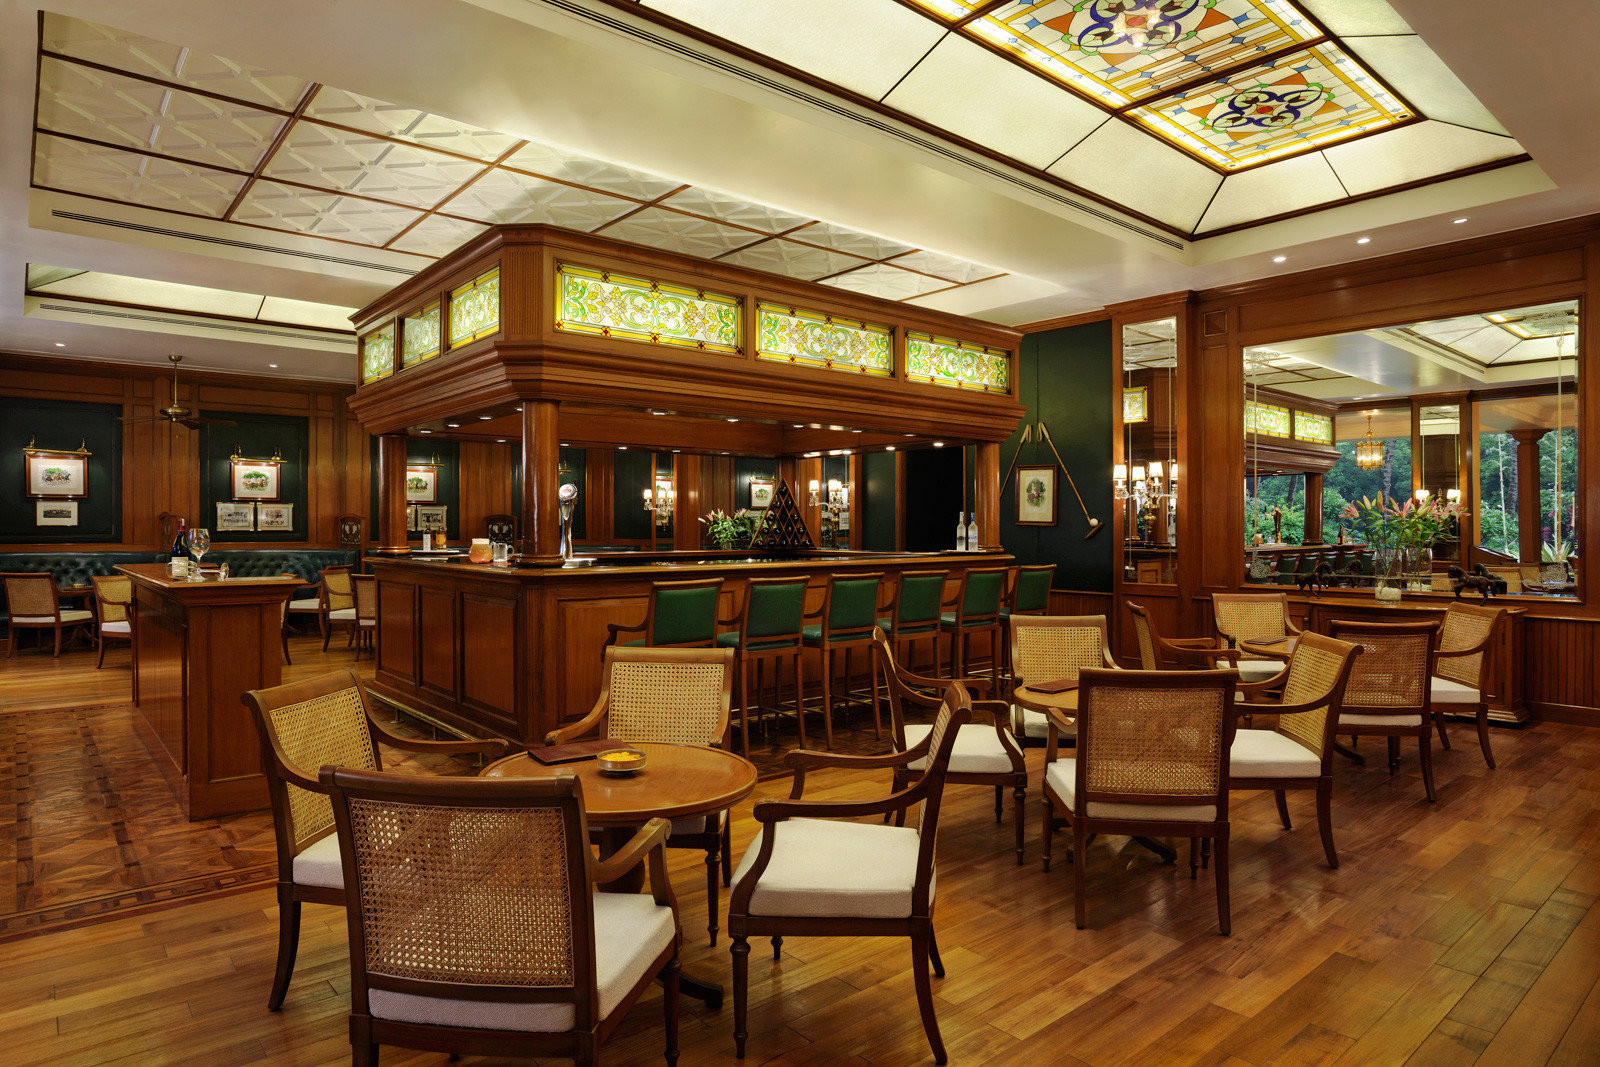 Business City Cultural Dining Elegant Luxury Shop chair Lobby building recreation room restaurant library café wooden Bar cafeteria Resort